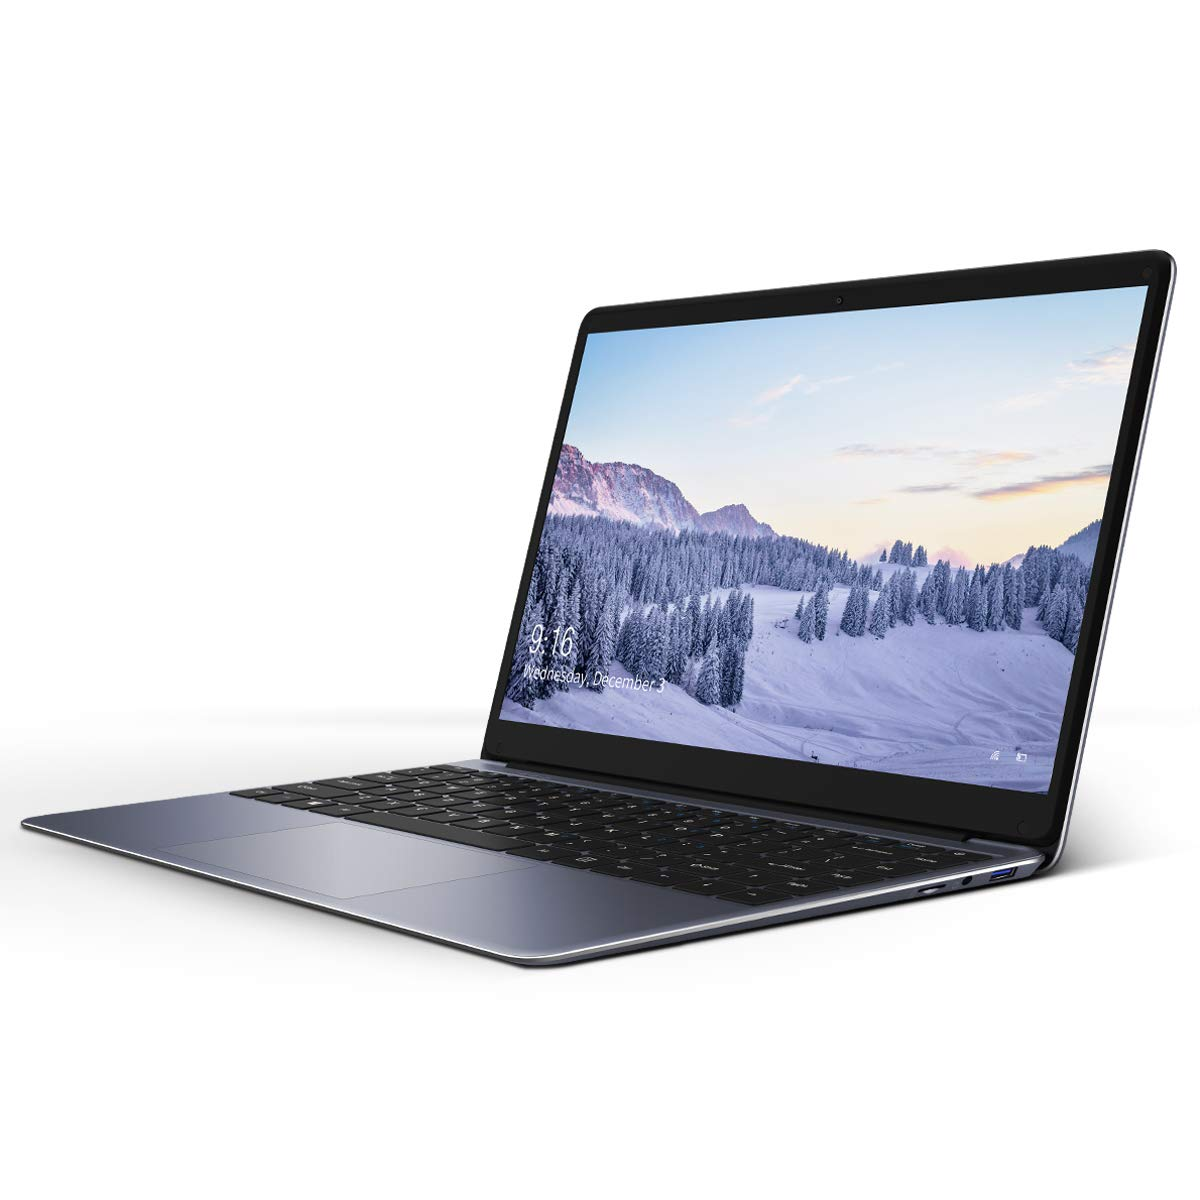 CHUWI Herobook 14.1 inch Laptop, Windows 10 Ultrabook Notebook Intel Atom X5-E8000, Quad Core 4G RAM 64GB eMMC, 1920*1080 FHD Screen, M.2 Slot and WIFI supports up to 128GB TF Card Expansion